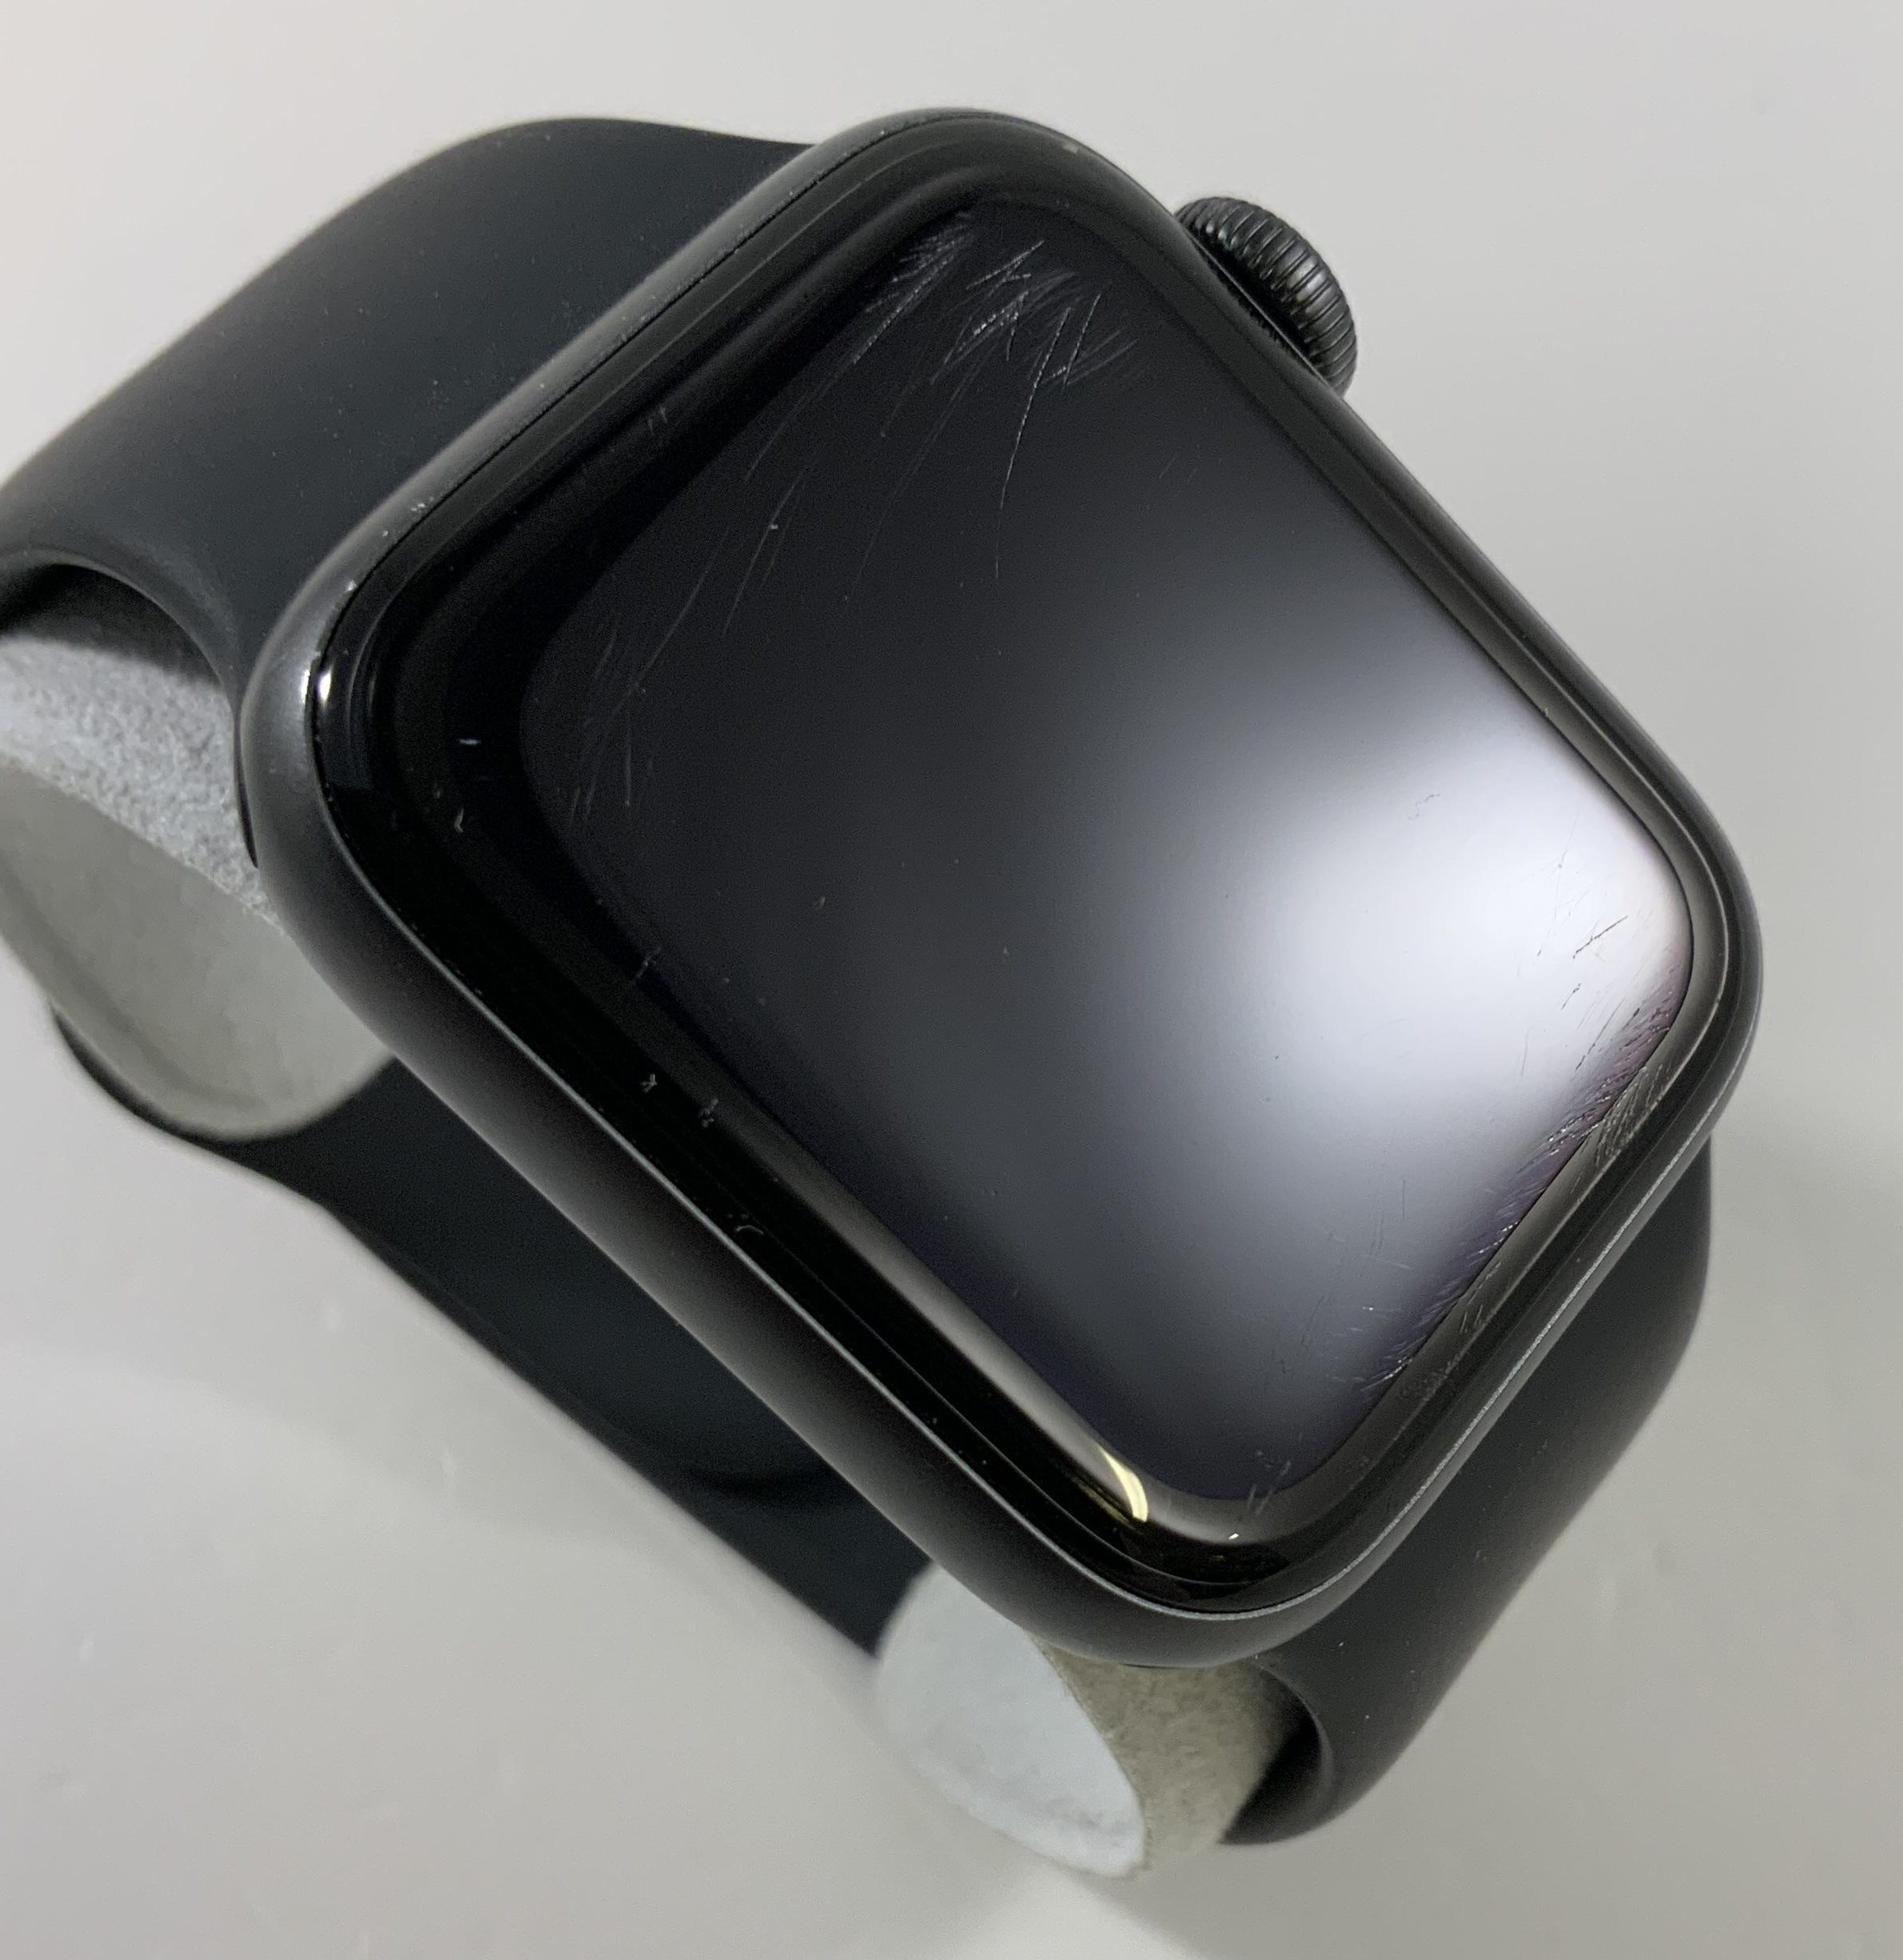 Watch Series 4 Aluminum Cellular (40mm), Space Gray, Black Sport Band, obraz 2